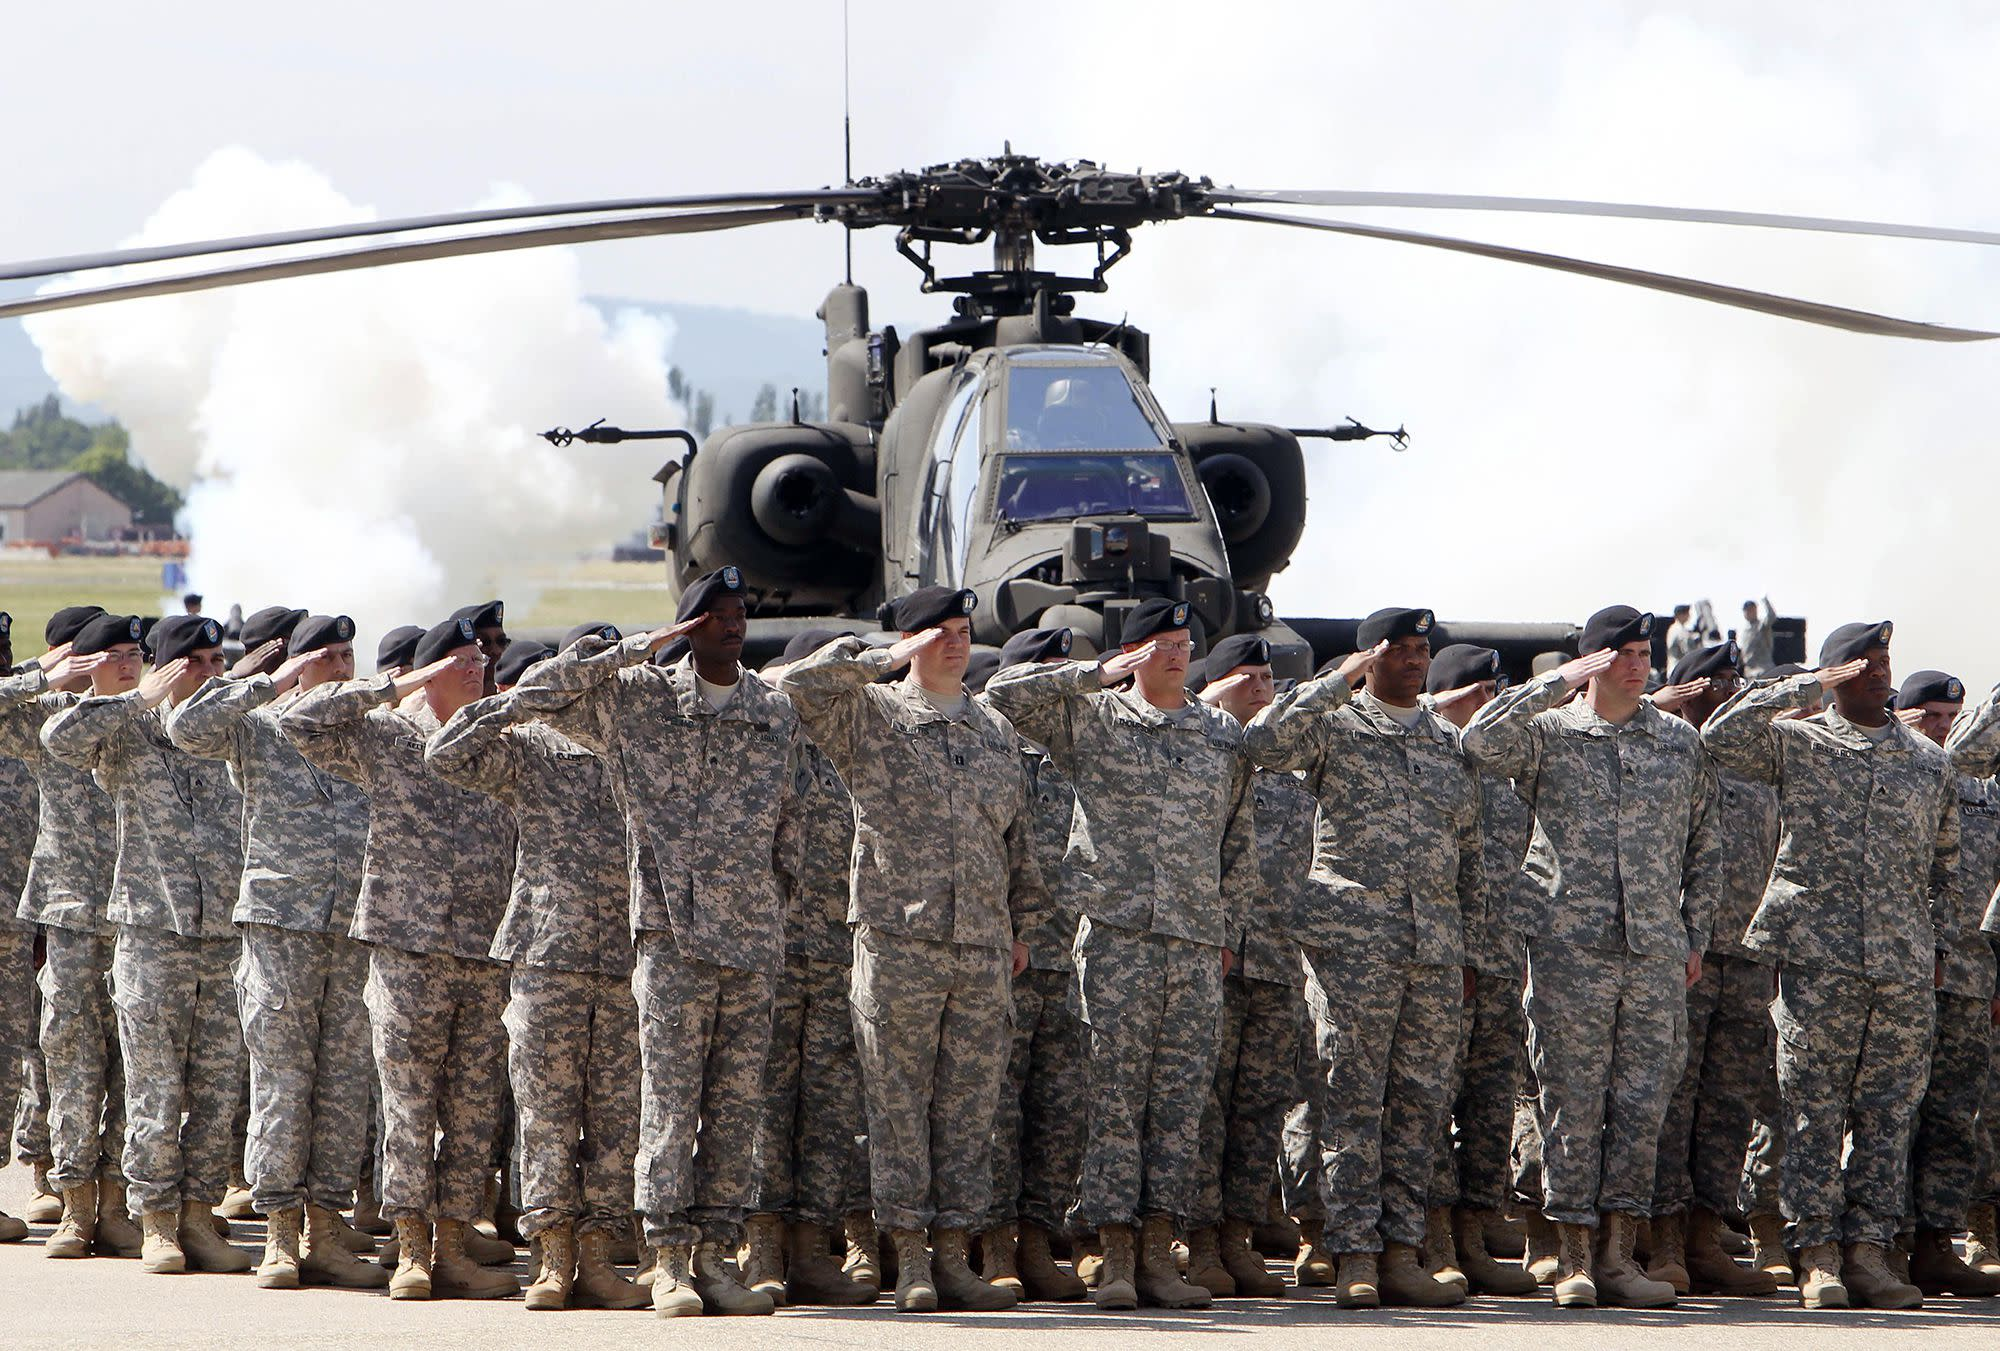 Where will Germany-based US troops go? The coming weeks may tell.